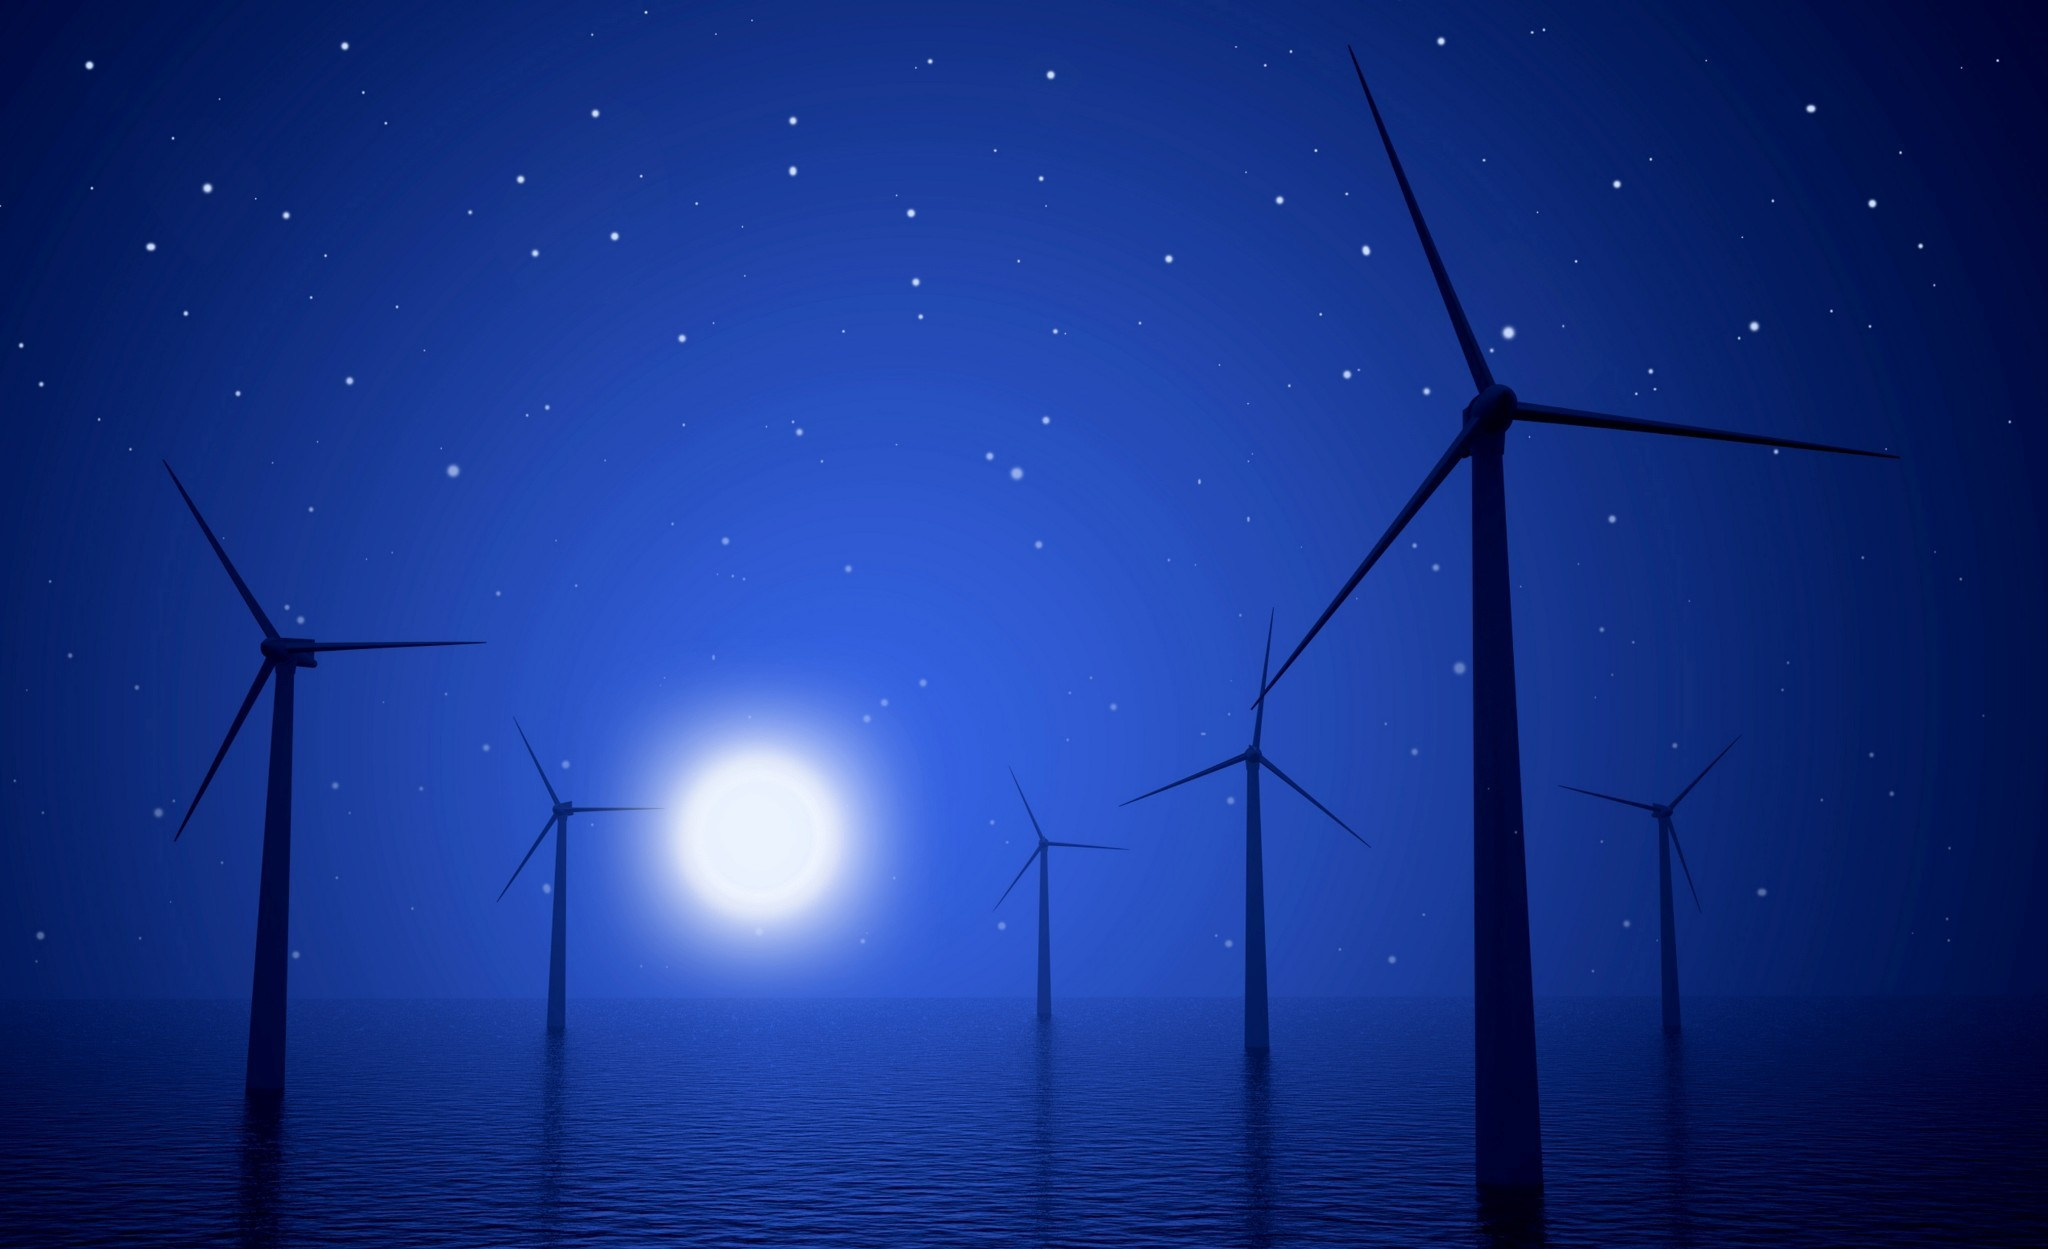 3d wind turbines producing energy in the sea at night